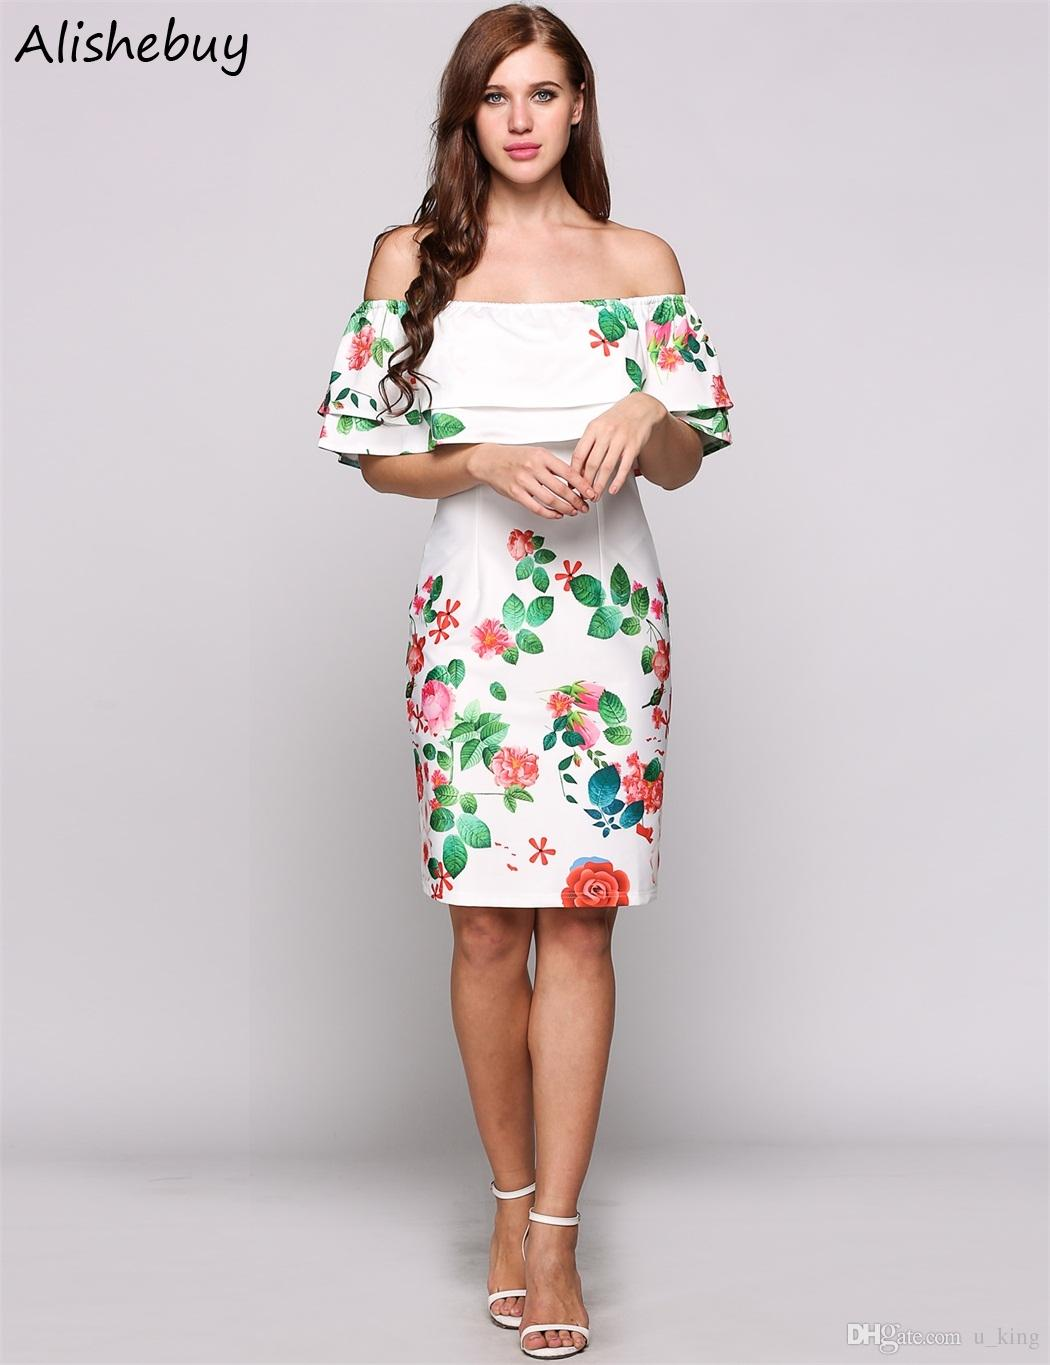 6a4e55782549 2019 Plus Size Sleeveless Dress Wome Off The Shoulder Cap Ruffles Floral  Print Party Dresses Bodycon Going Out Knee Length Dress White SVH032923  From U king ...